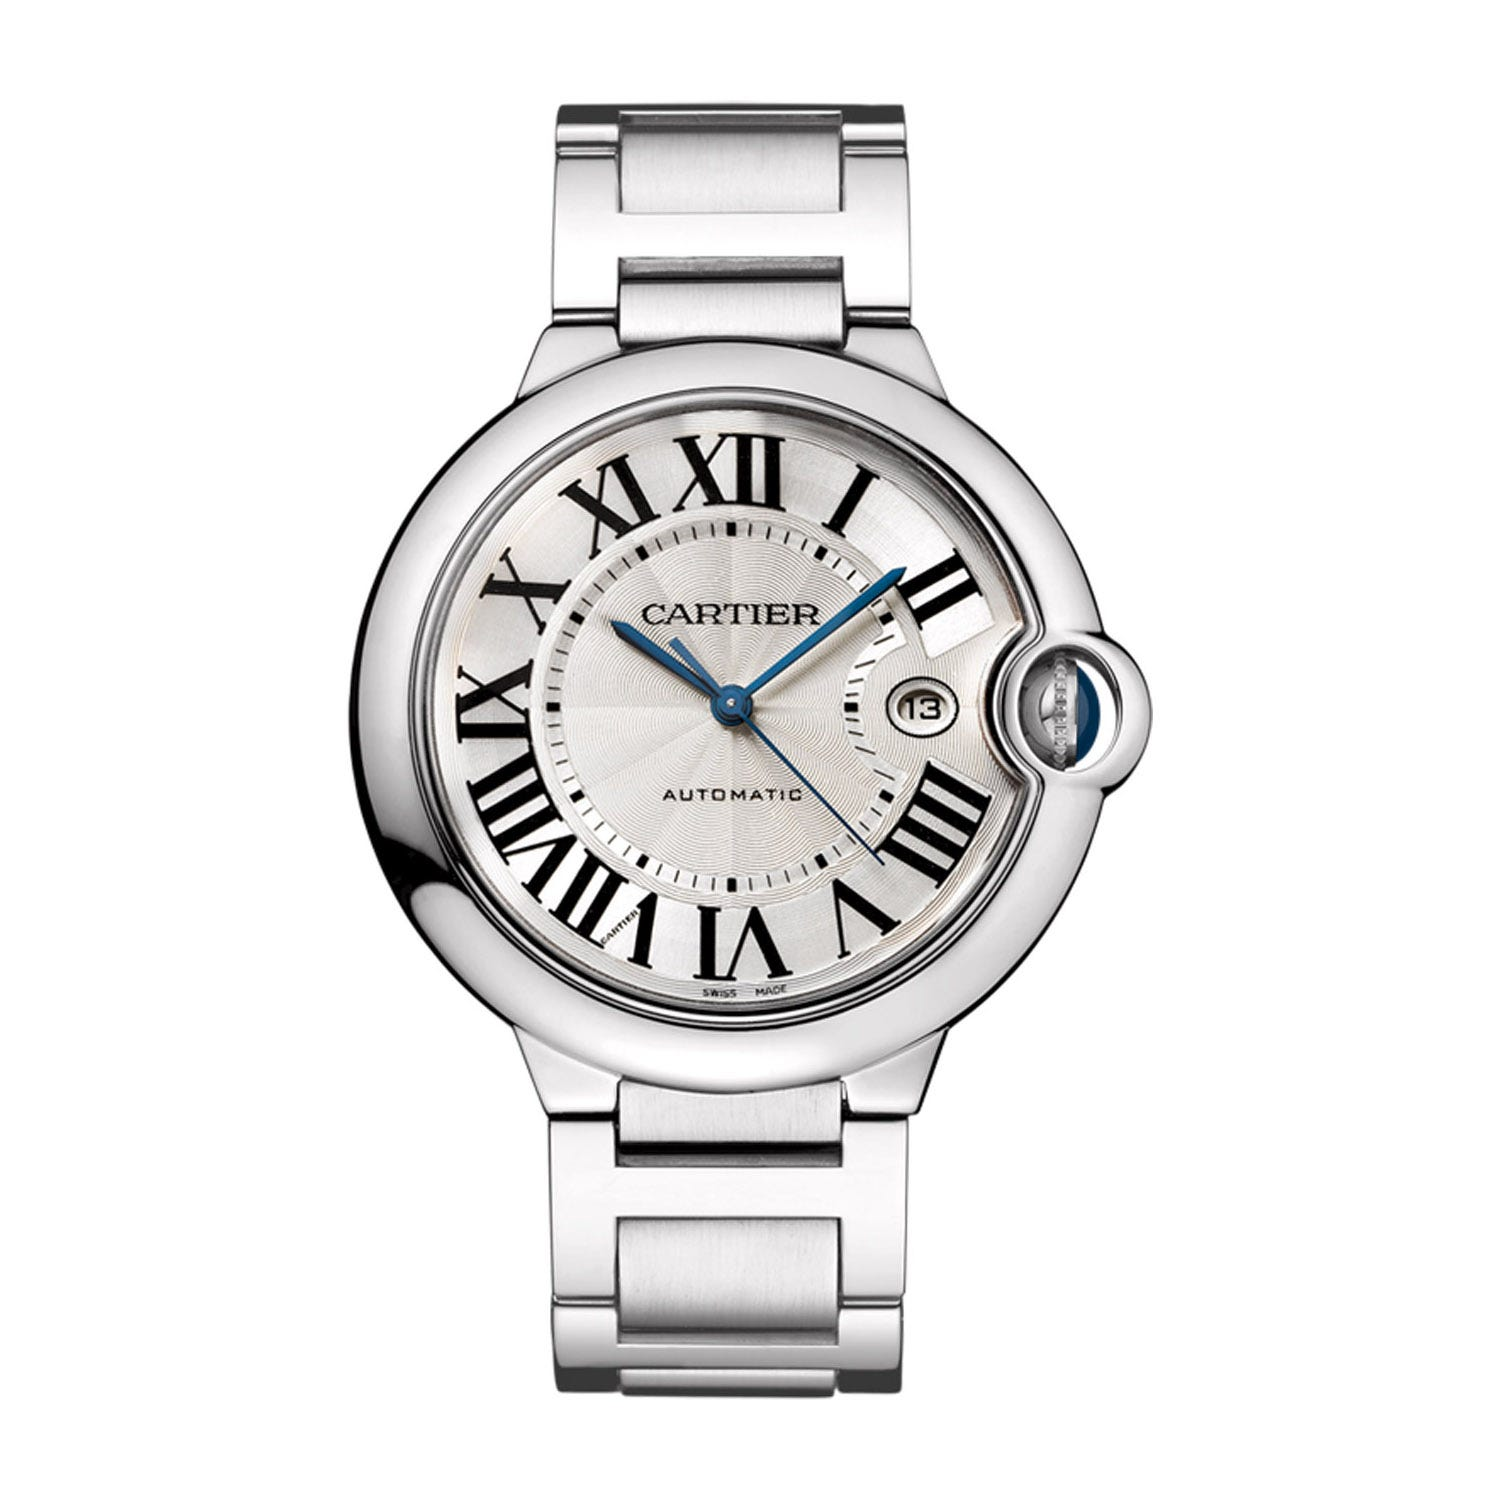 Cartier Ballon Bleu De Cartier Men's Automatic Large Stainless Steel Watch